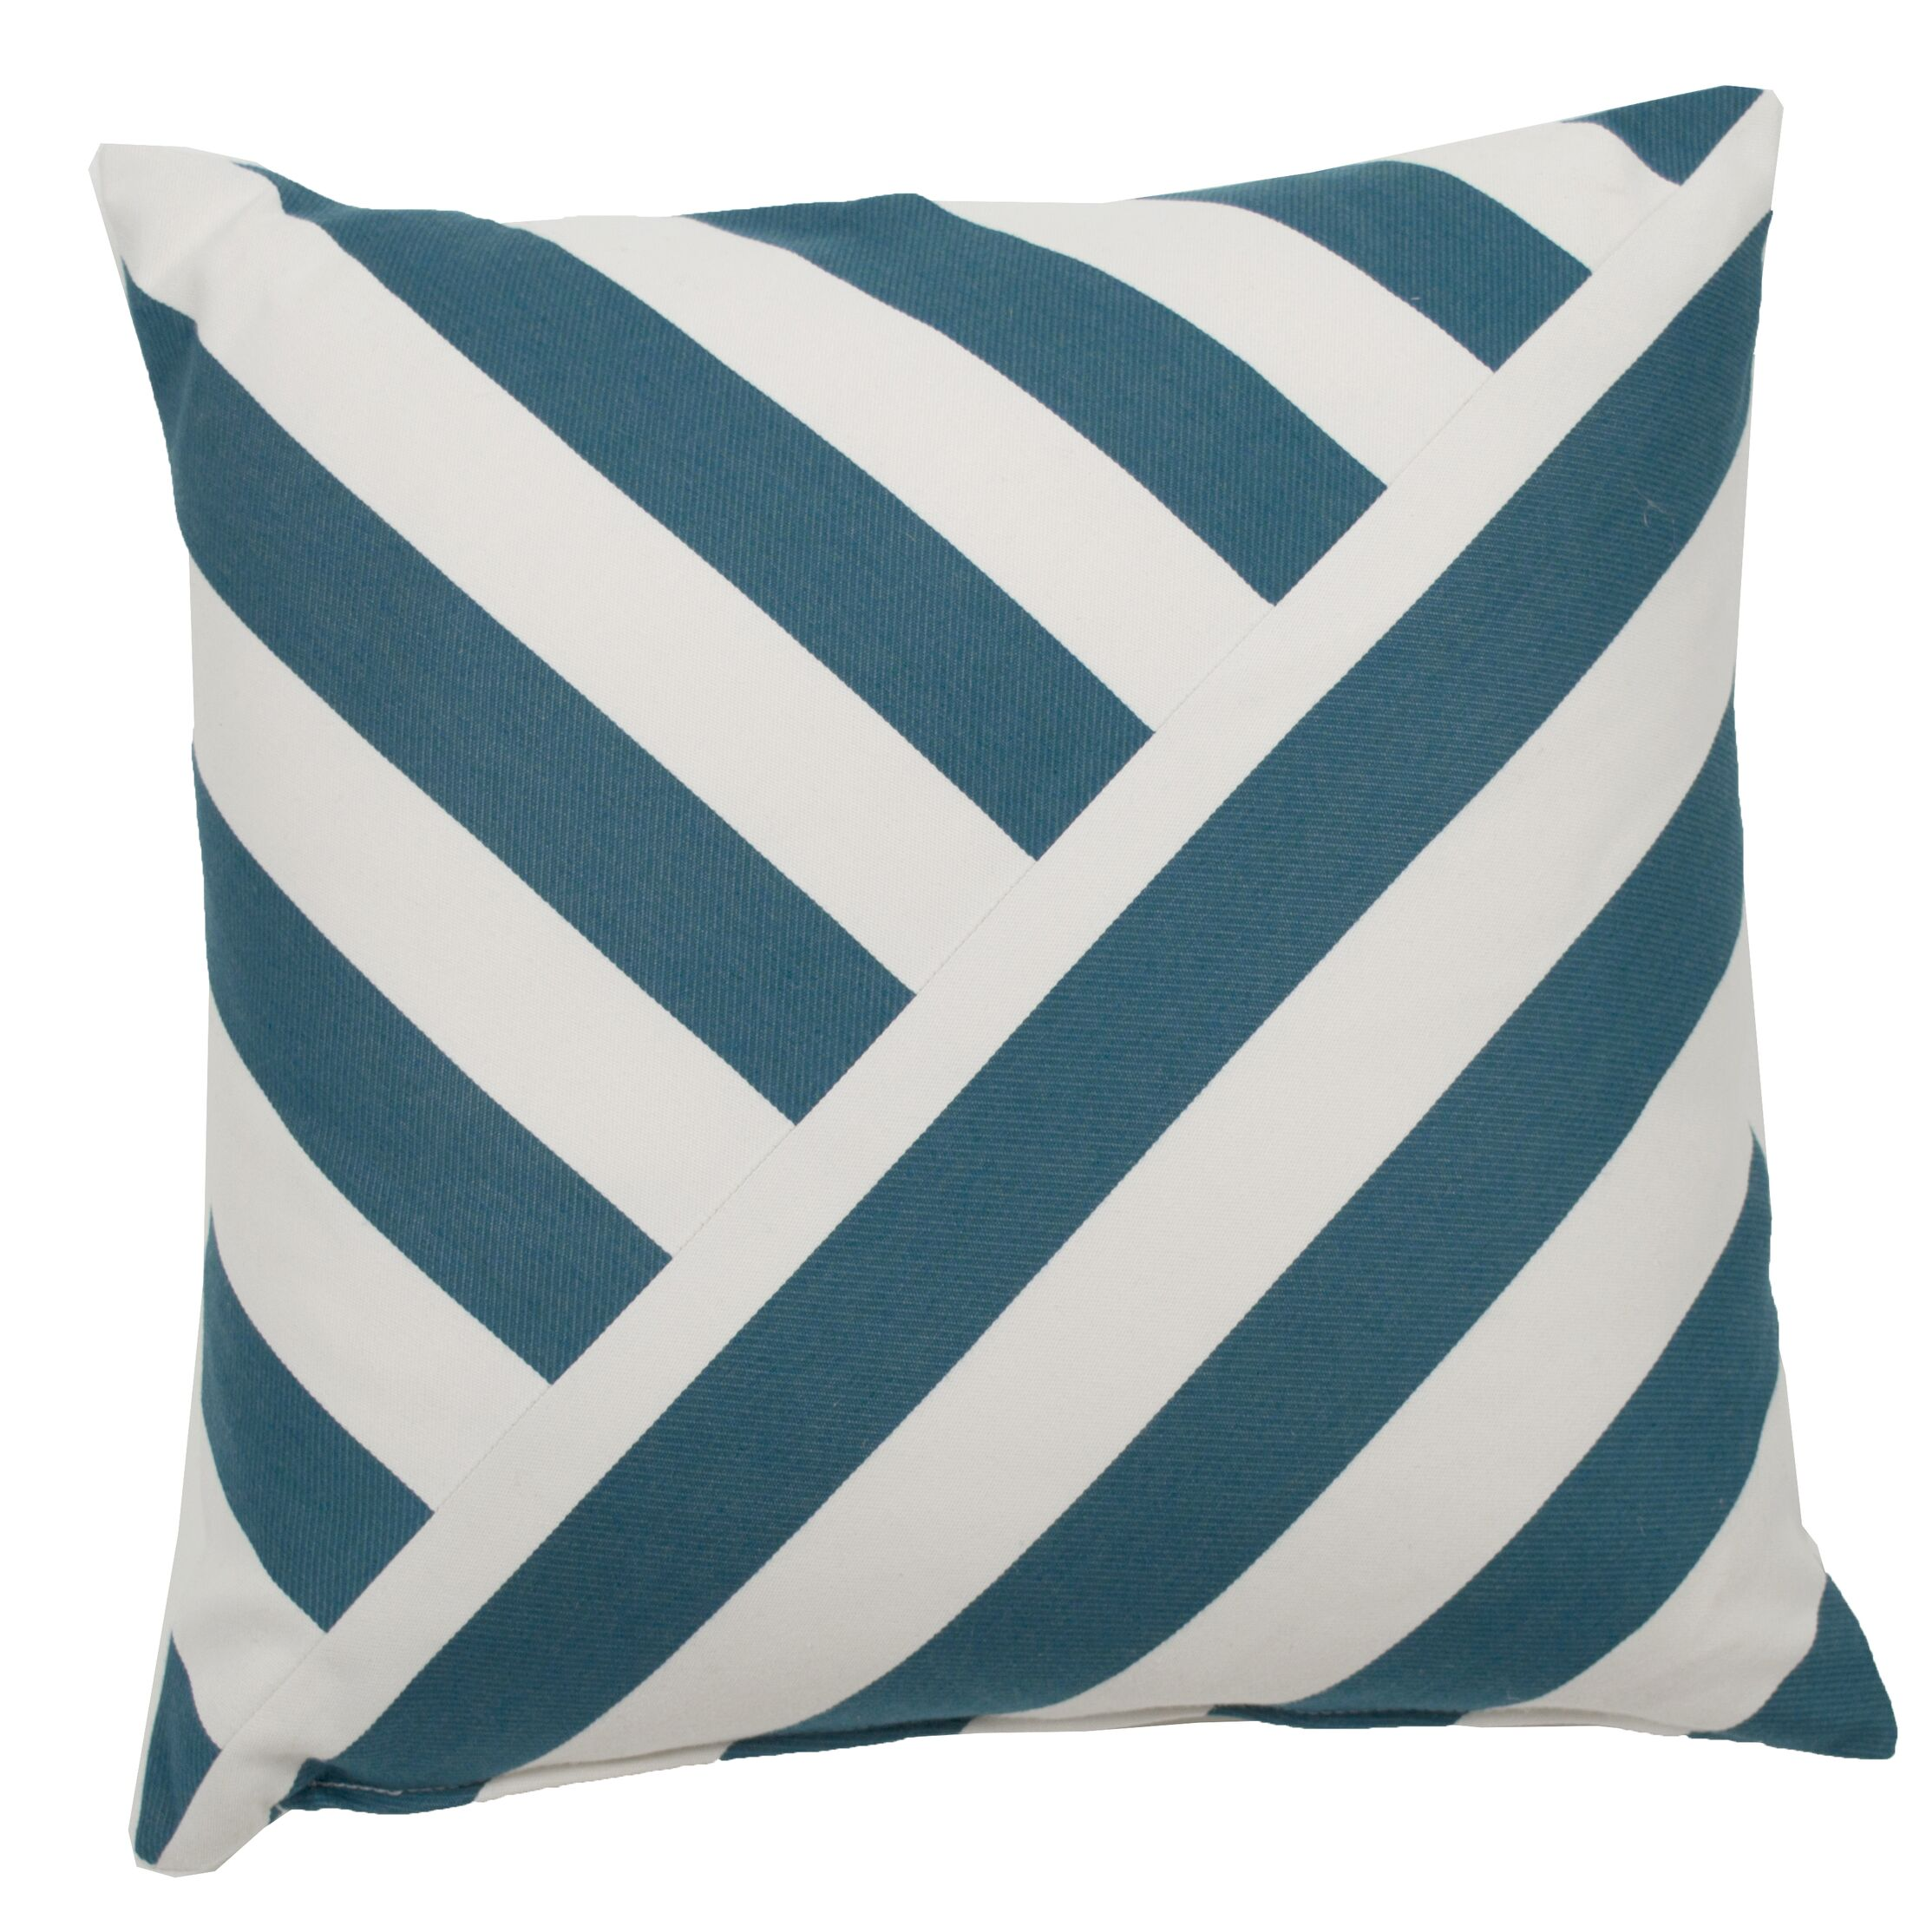 Halo Indoor/Outdoor Throw Pillow (Set of 2) Color: Peacock, Size: 24